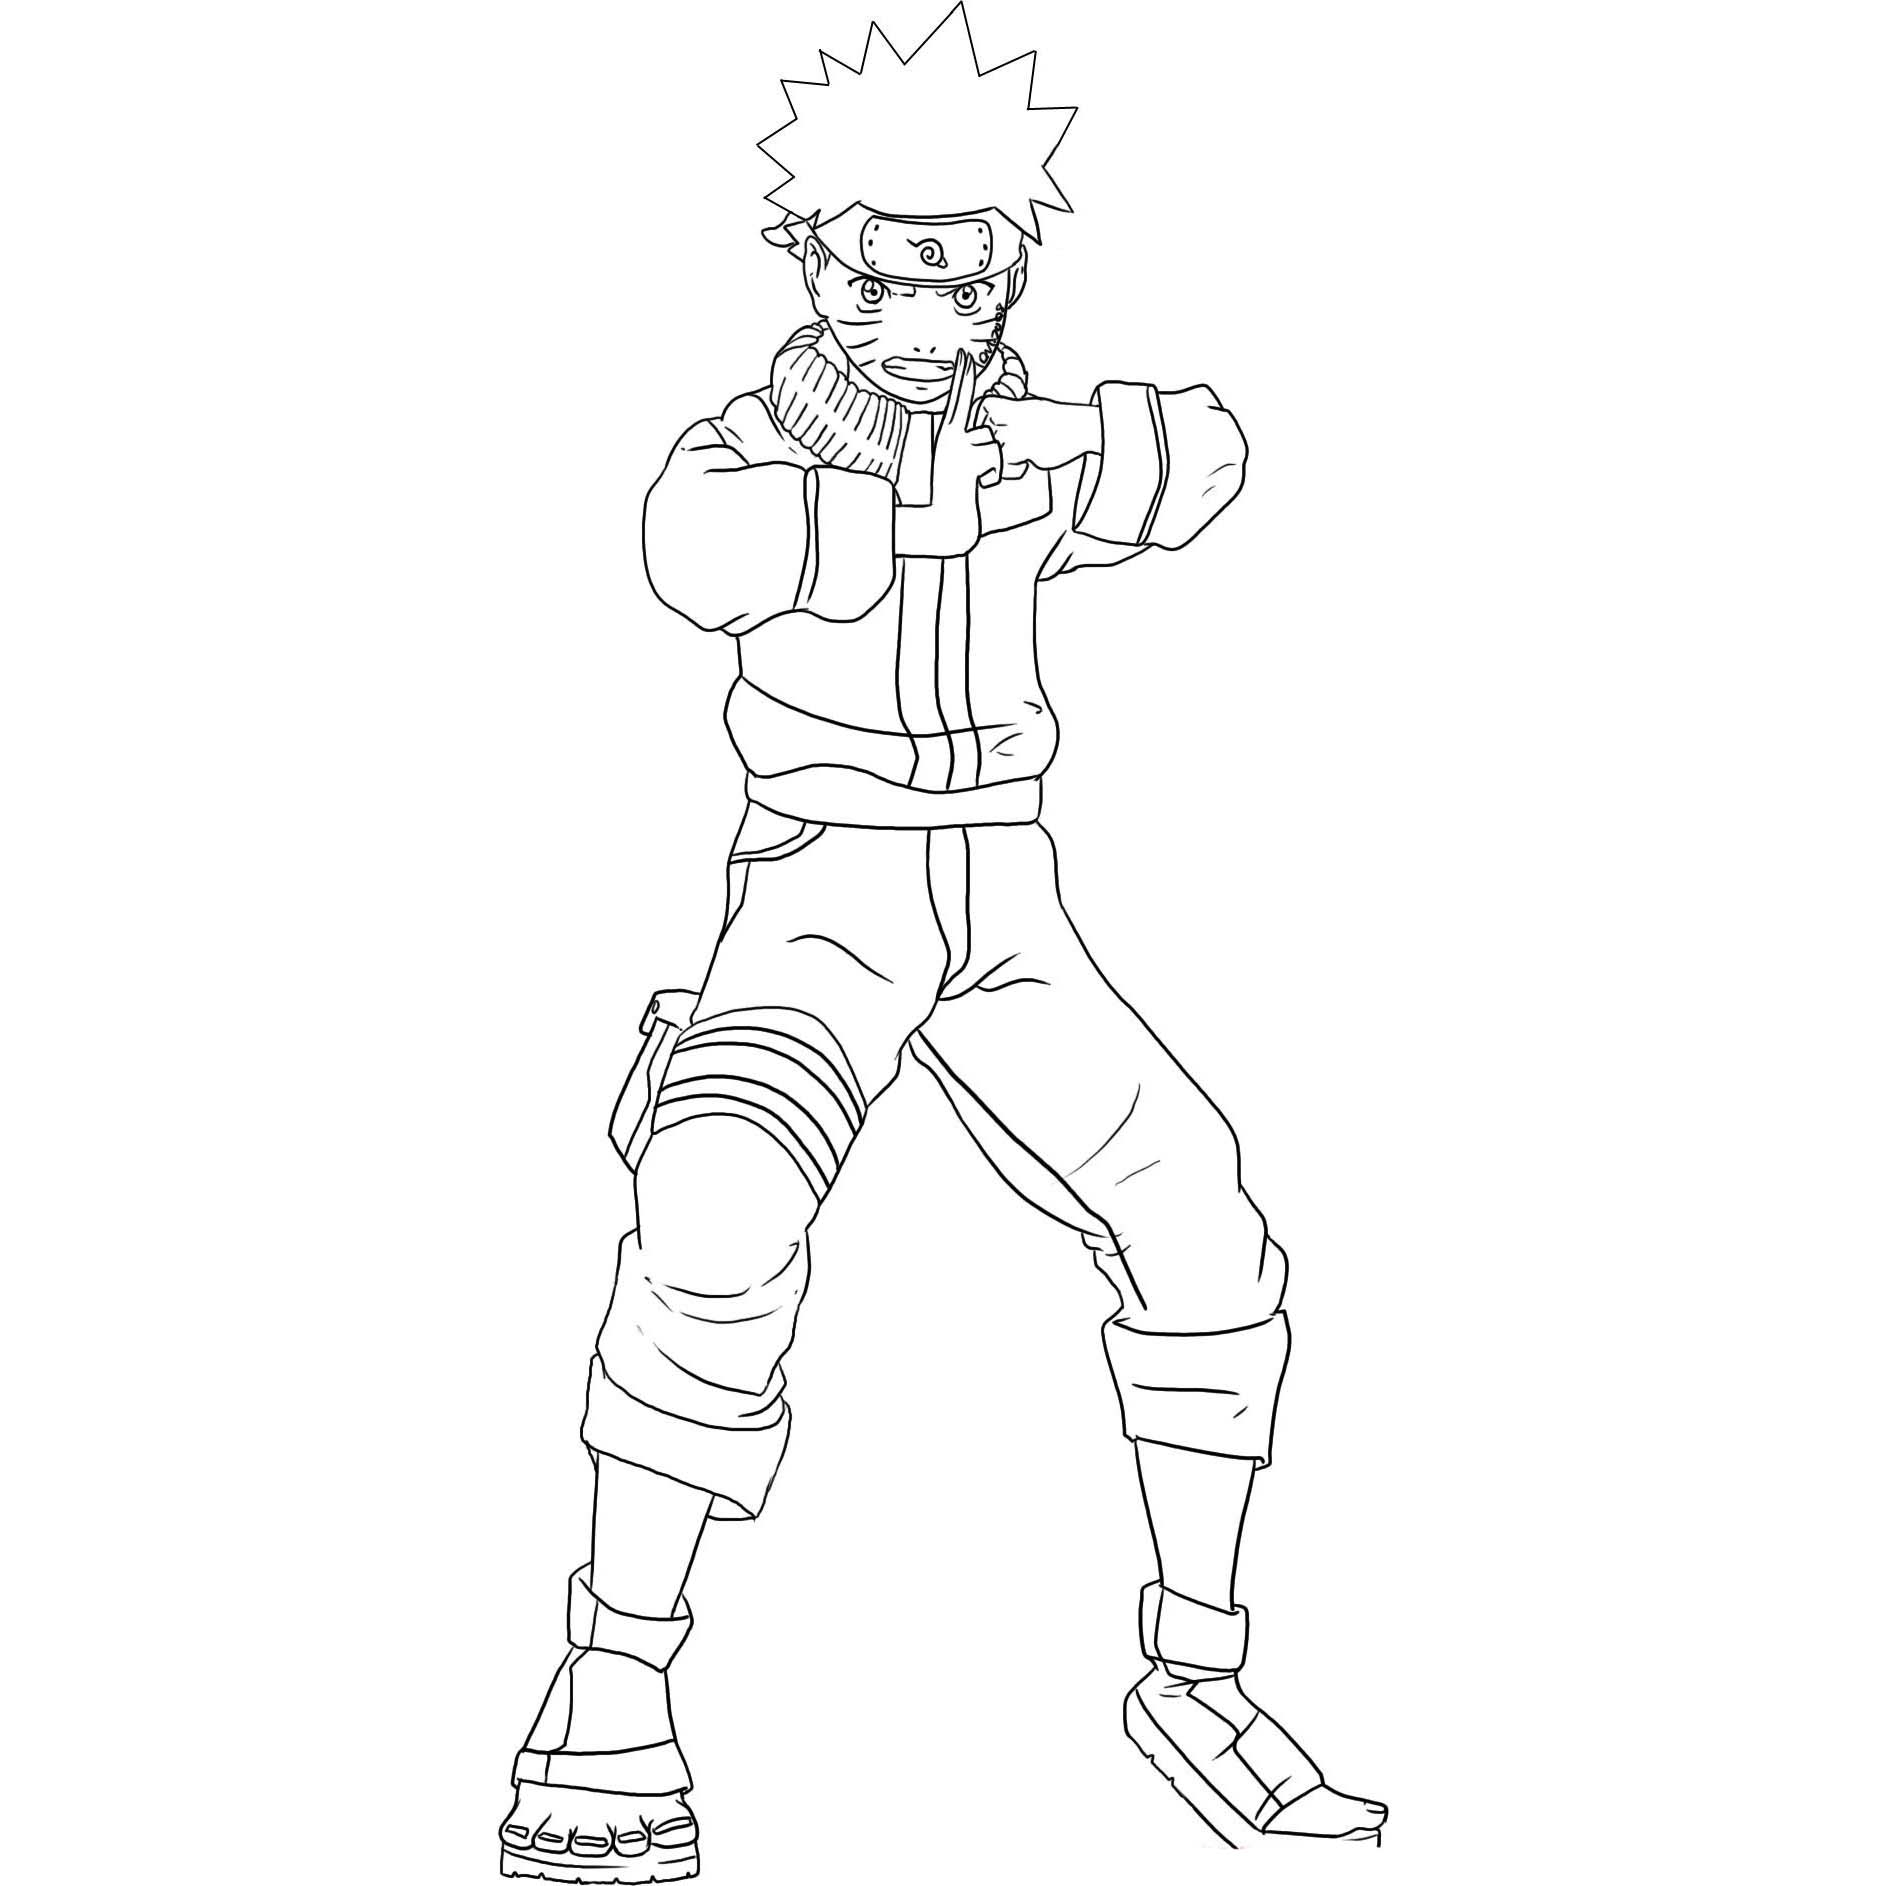 Naruto Manga as well Loaf Of Bread as well 4 Words Figural in addition Bleach Ichigo And Grimmjow Lineart 429377974 as well File Pioneer plaque man upper body as diagram template. on pain coloring pages